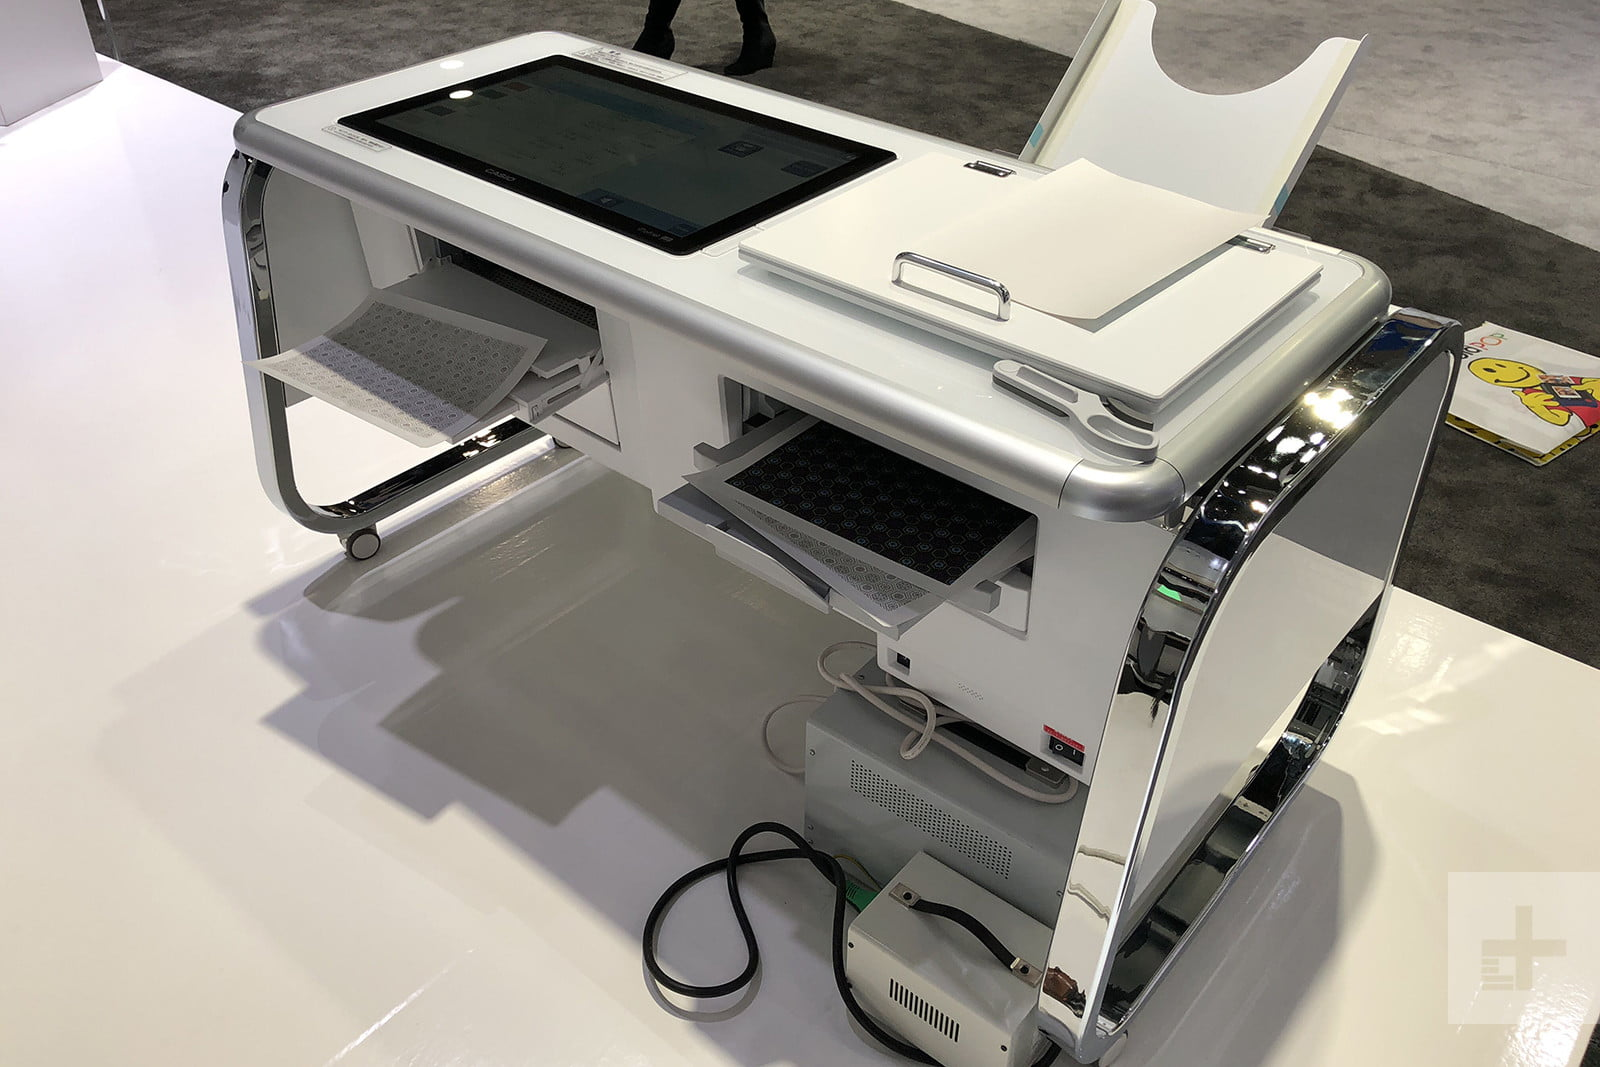 casio mofrel 25d printer ces2018 image uploaded from ios 9